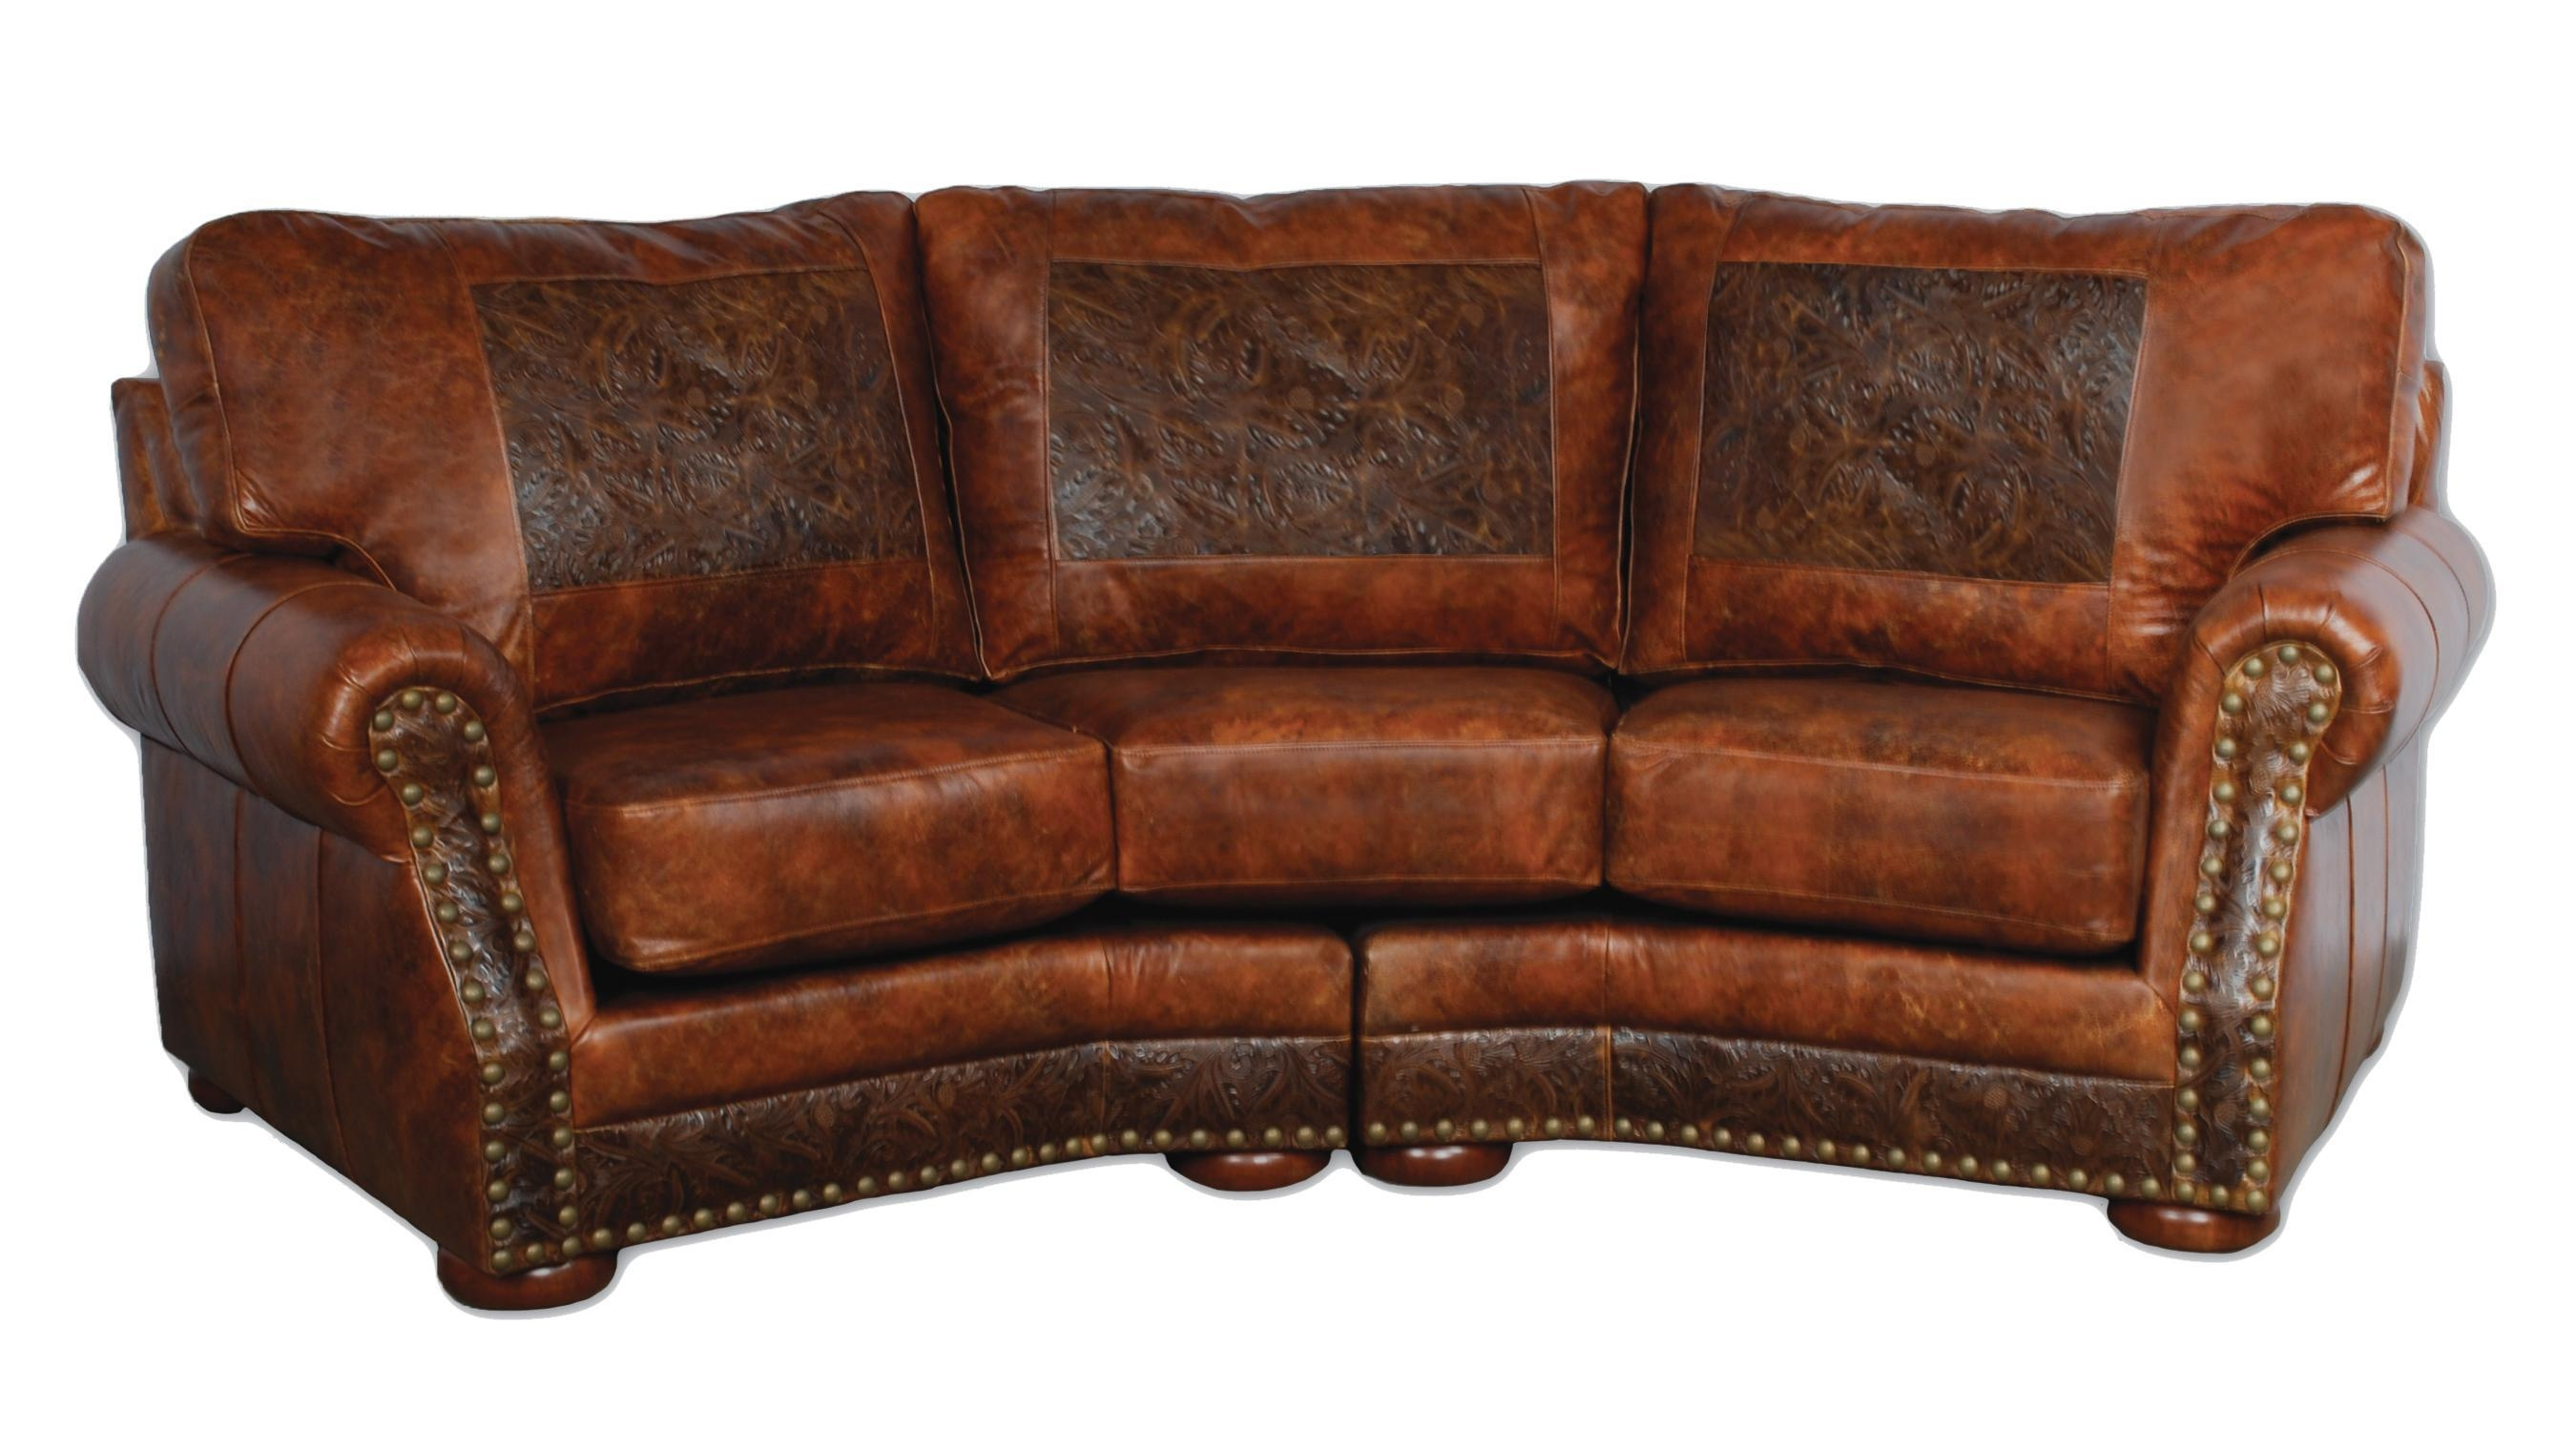 Sofas – Wild Wild West – Furnishings, Home Decor, & More Regarding Leather Bench Sofas (View 18 of 22)